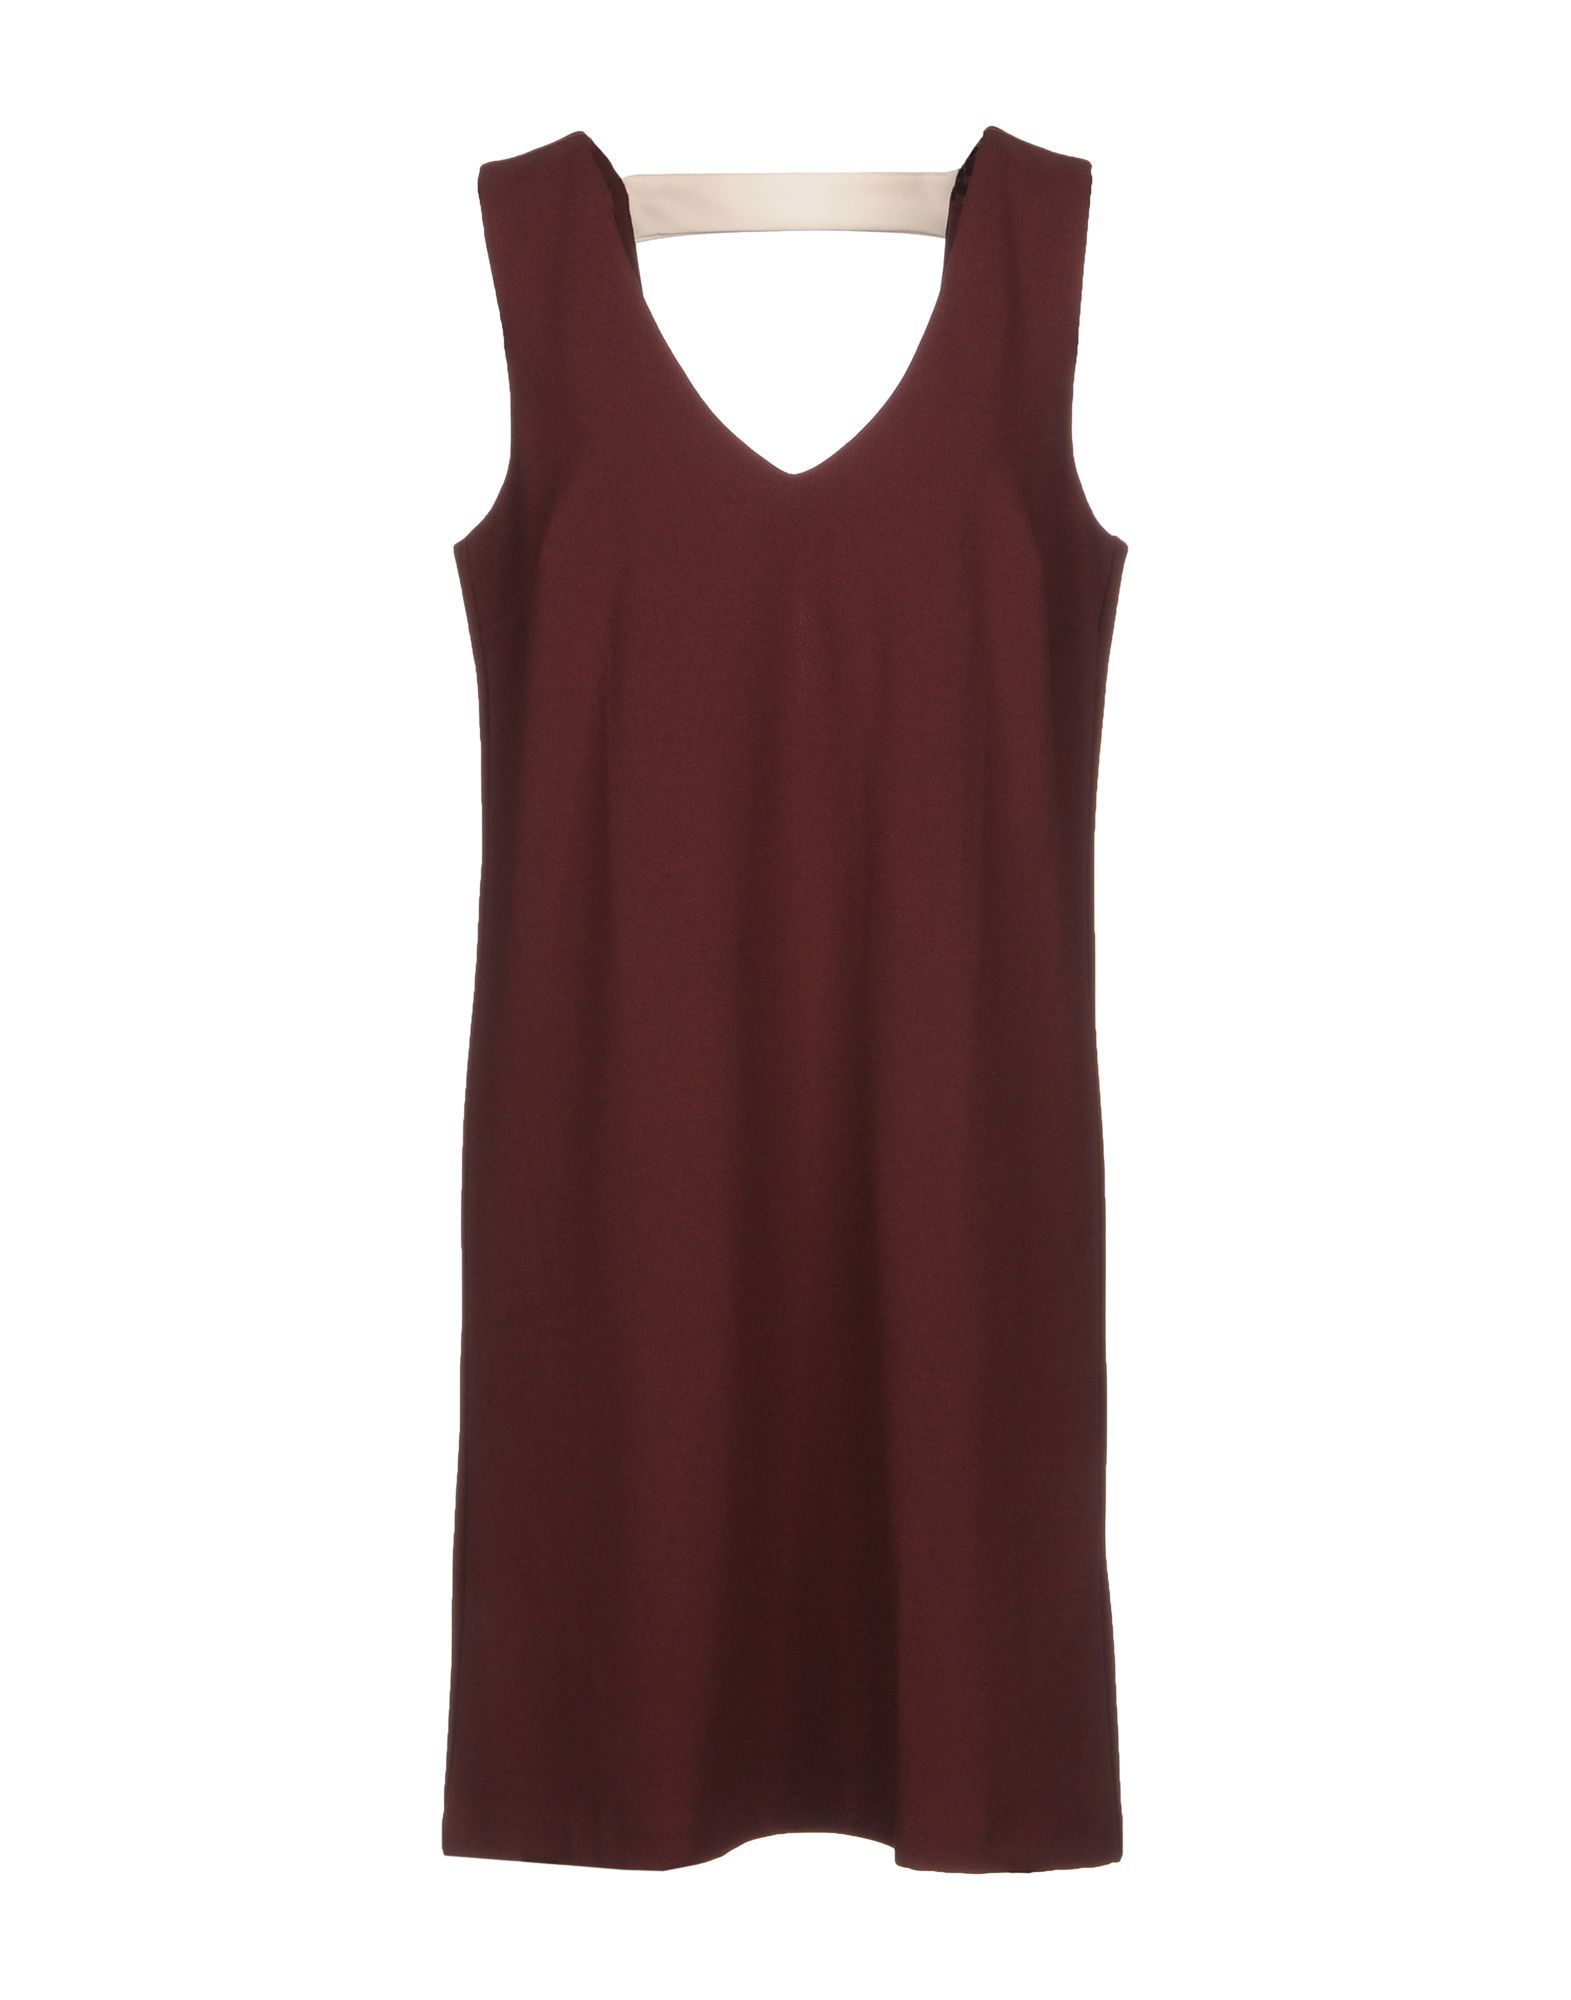 Merci Maroon Crepe Dress